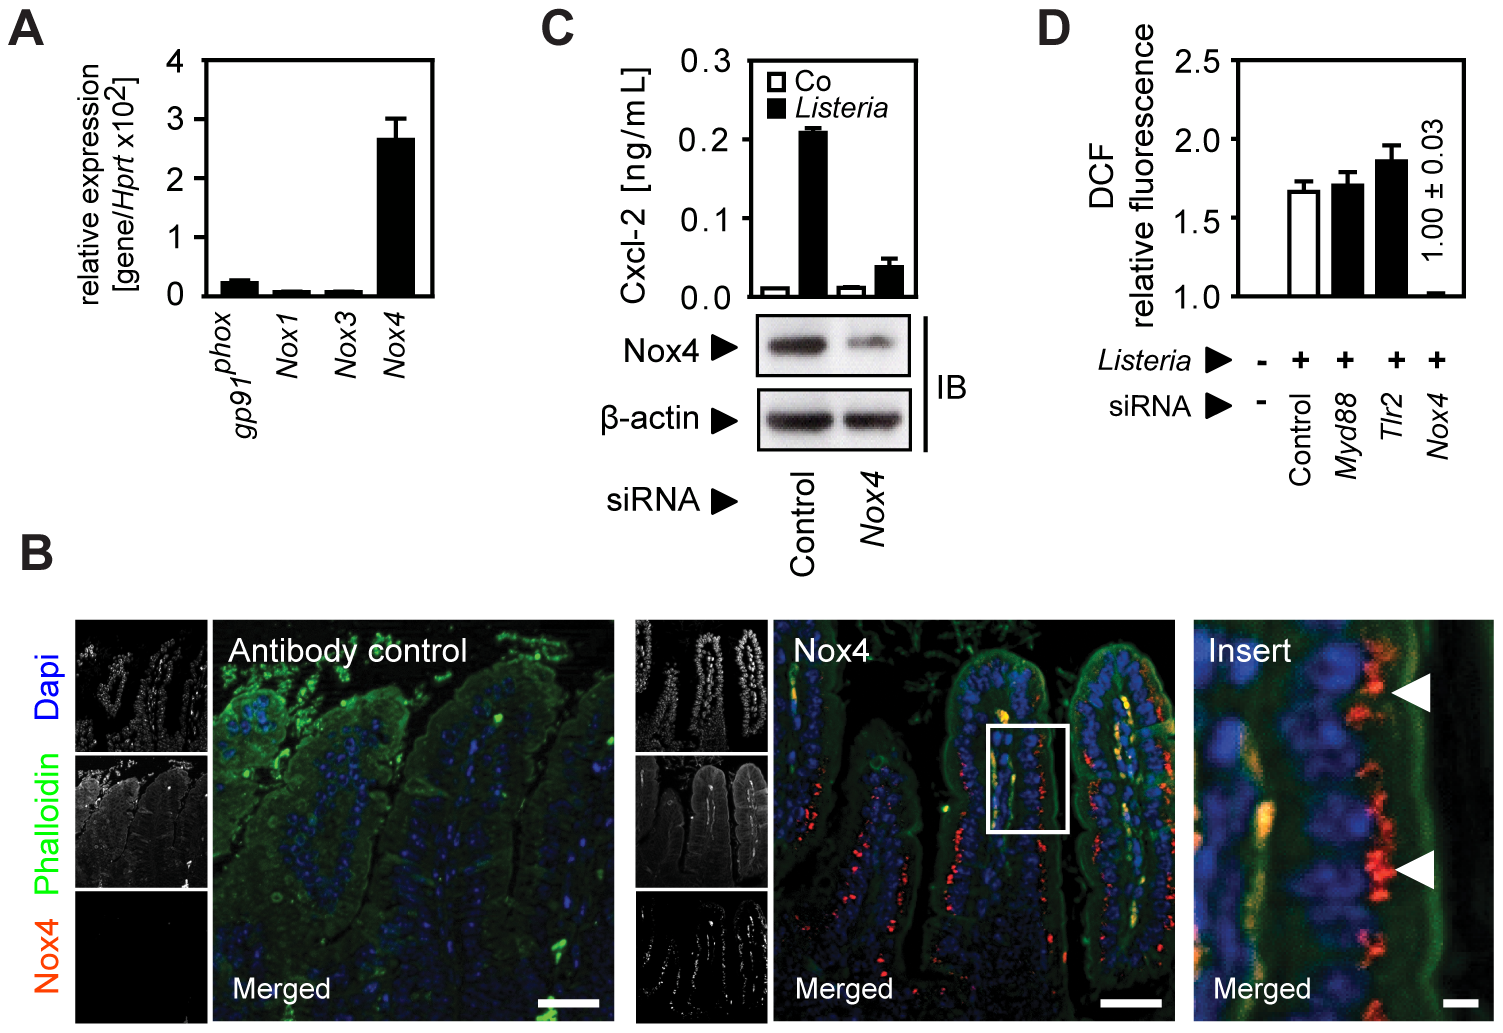 Activation of the NADPH oxidase (Nox) 4 mediates indirect epithelial activation.